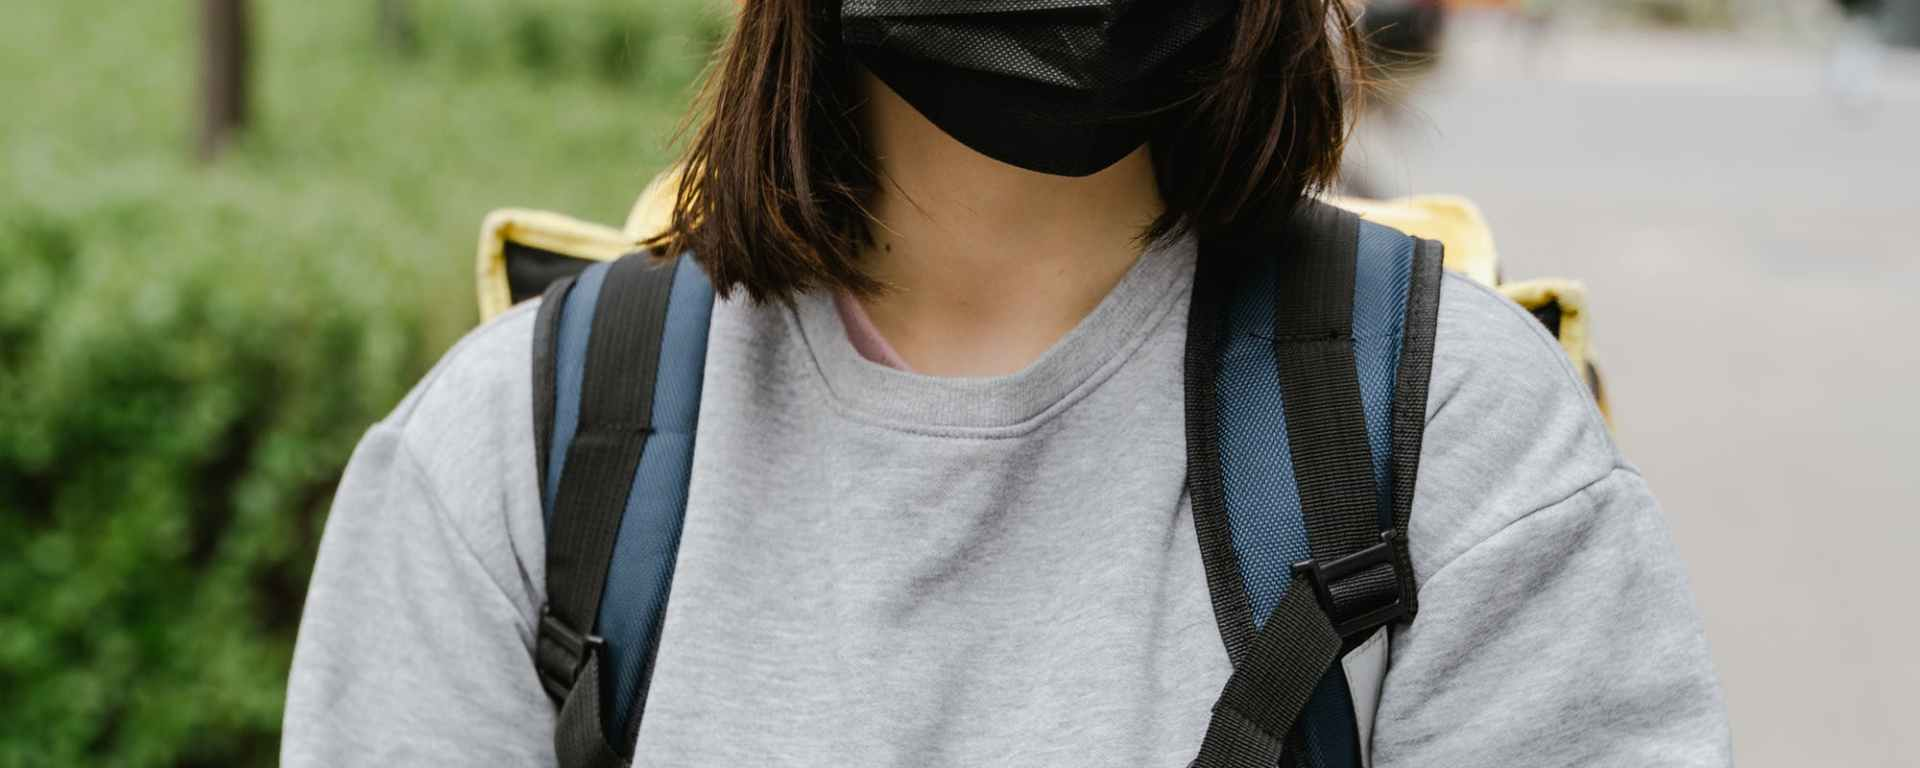 pexels-woman walking down street wearing face mask and holding phone